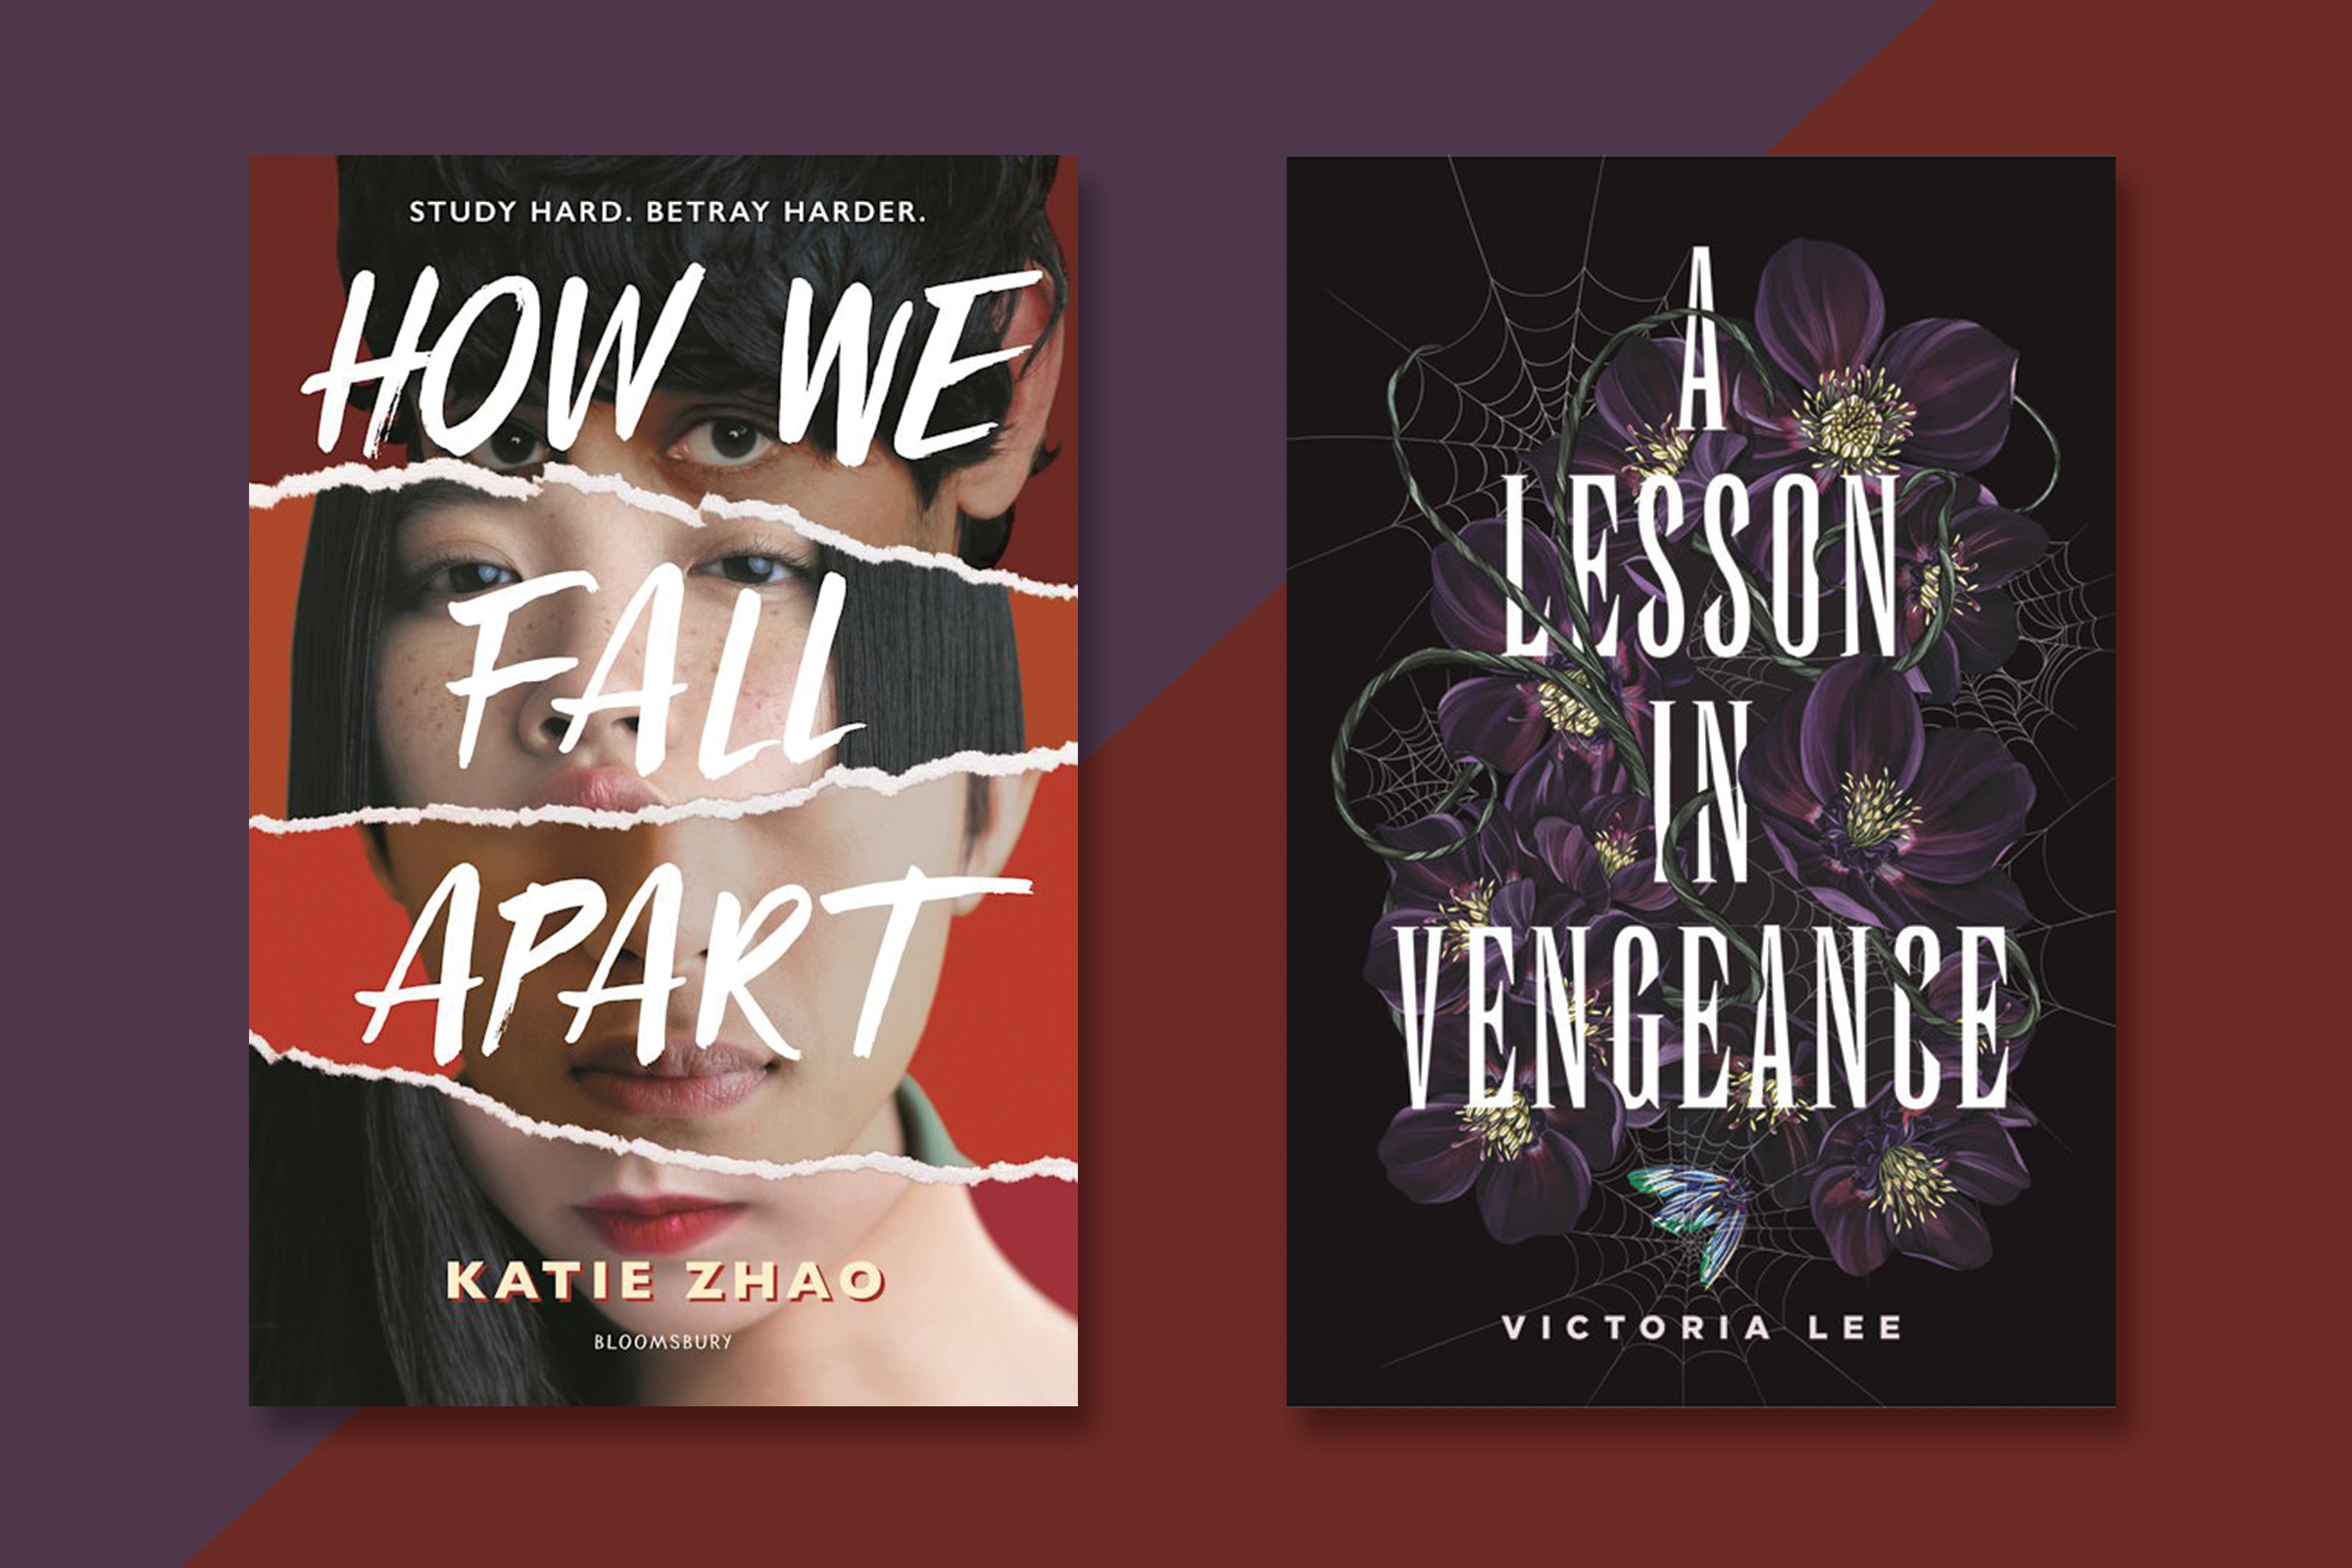 a collage of two book covers: How We Fall Apart, a photo of an Asian teenage girl with black hair split up into various pieces and A Lesson in Vengeance, a black book cover with an illustration of purple flowers and cobwebs